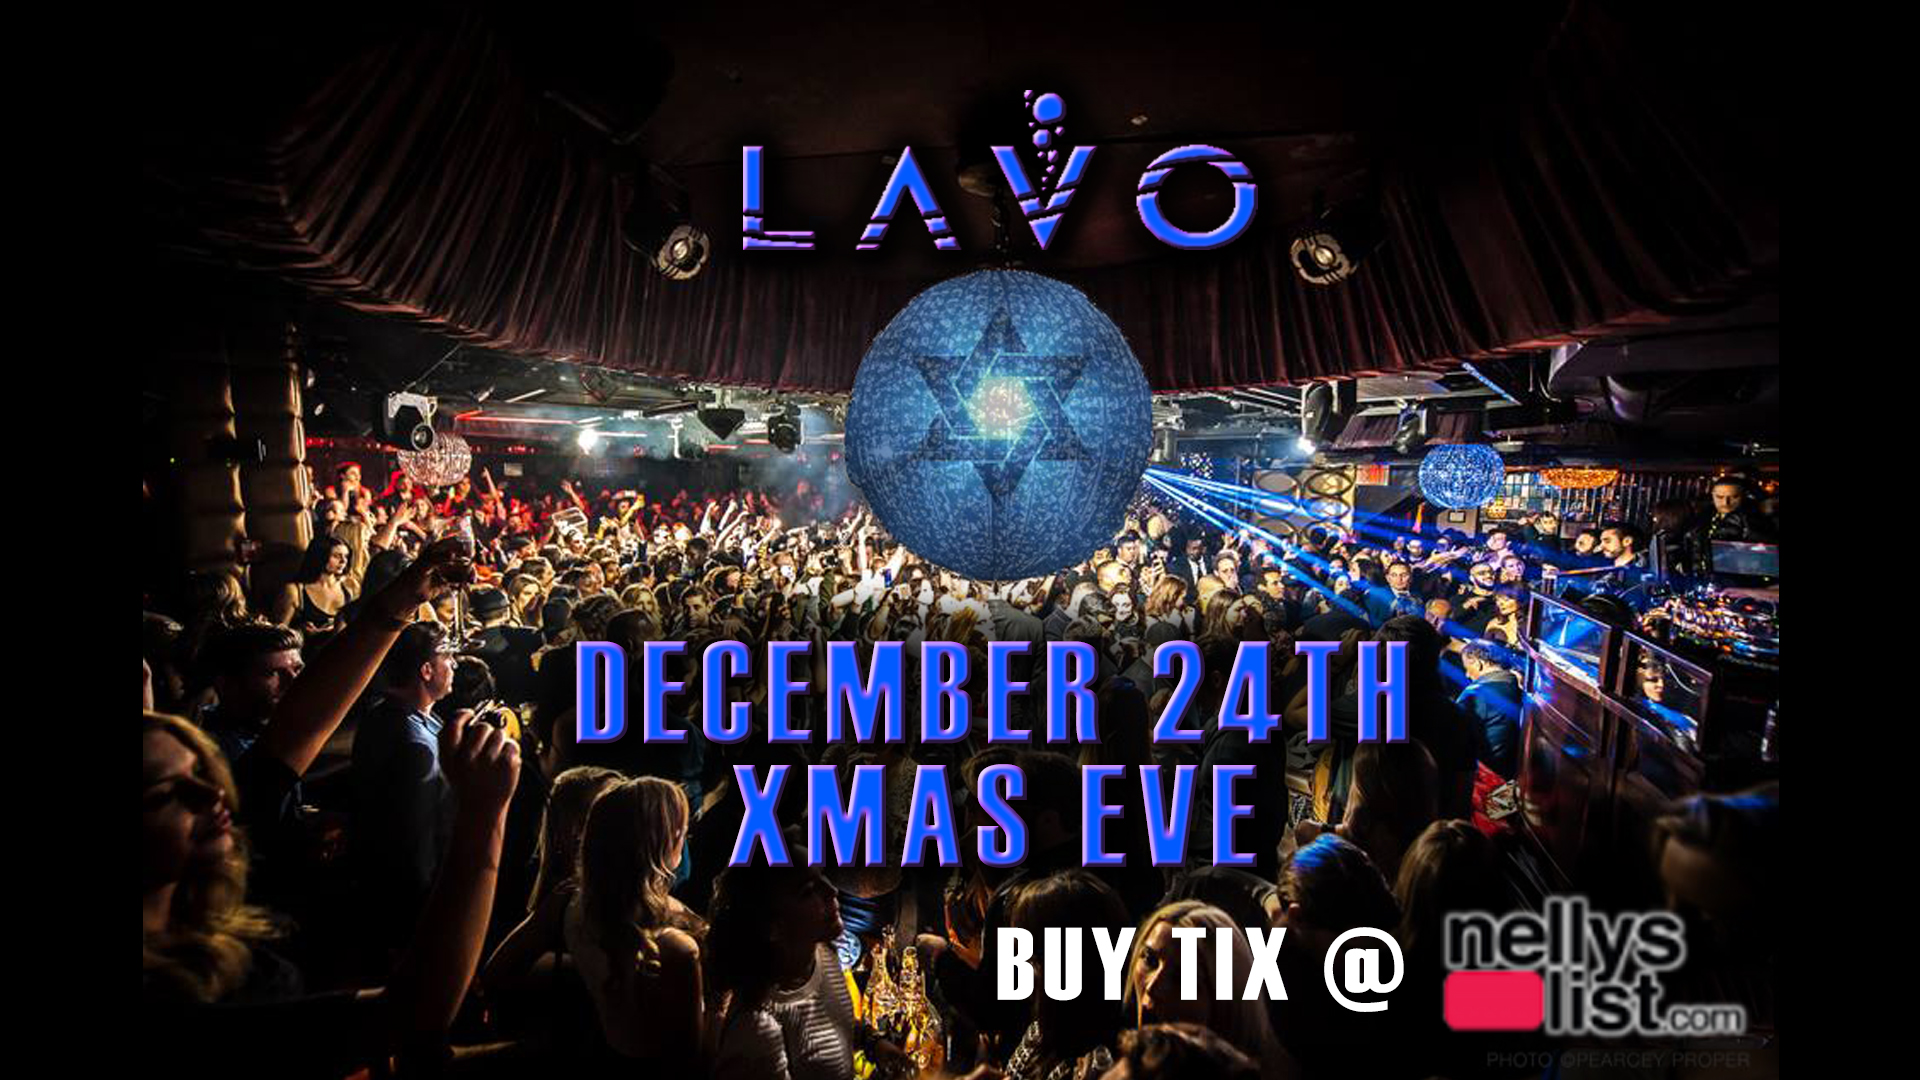 lavo-xmas-eve-2015-fb-invitaion-banner